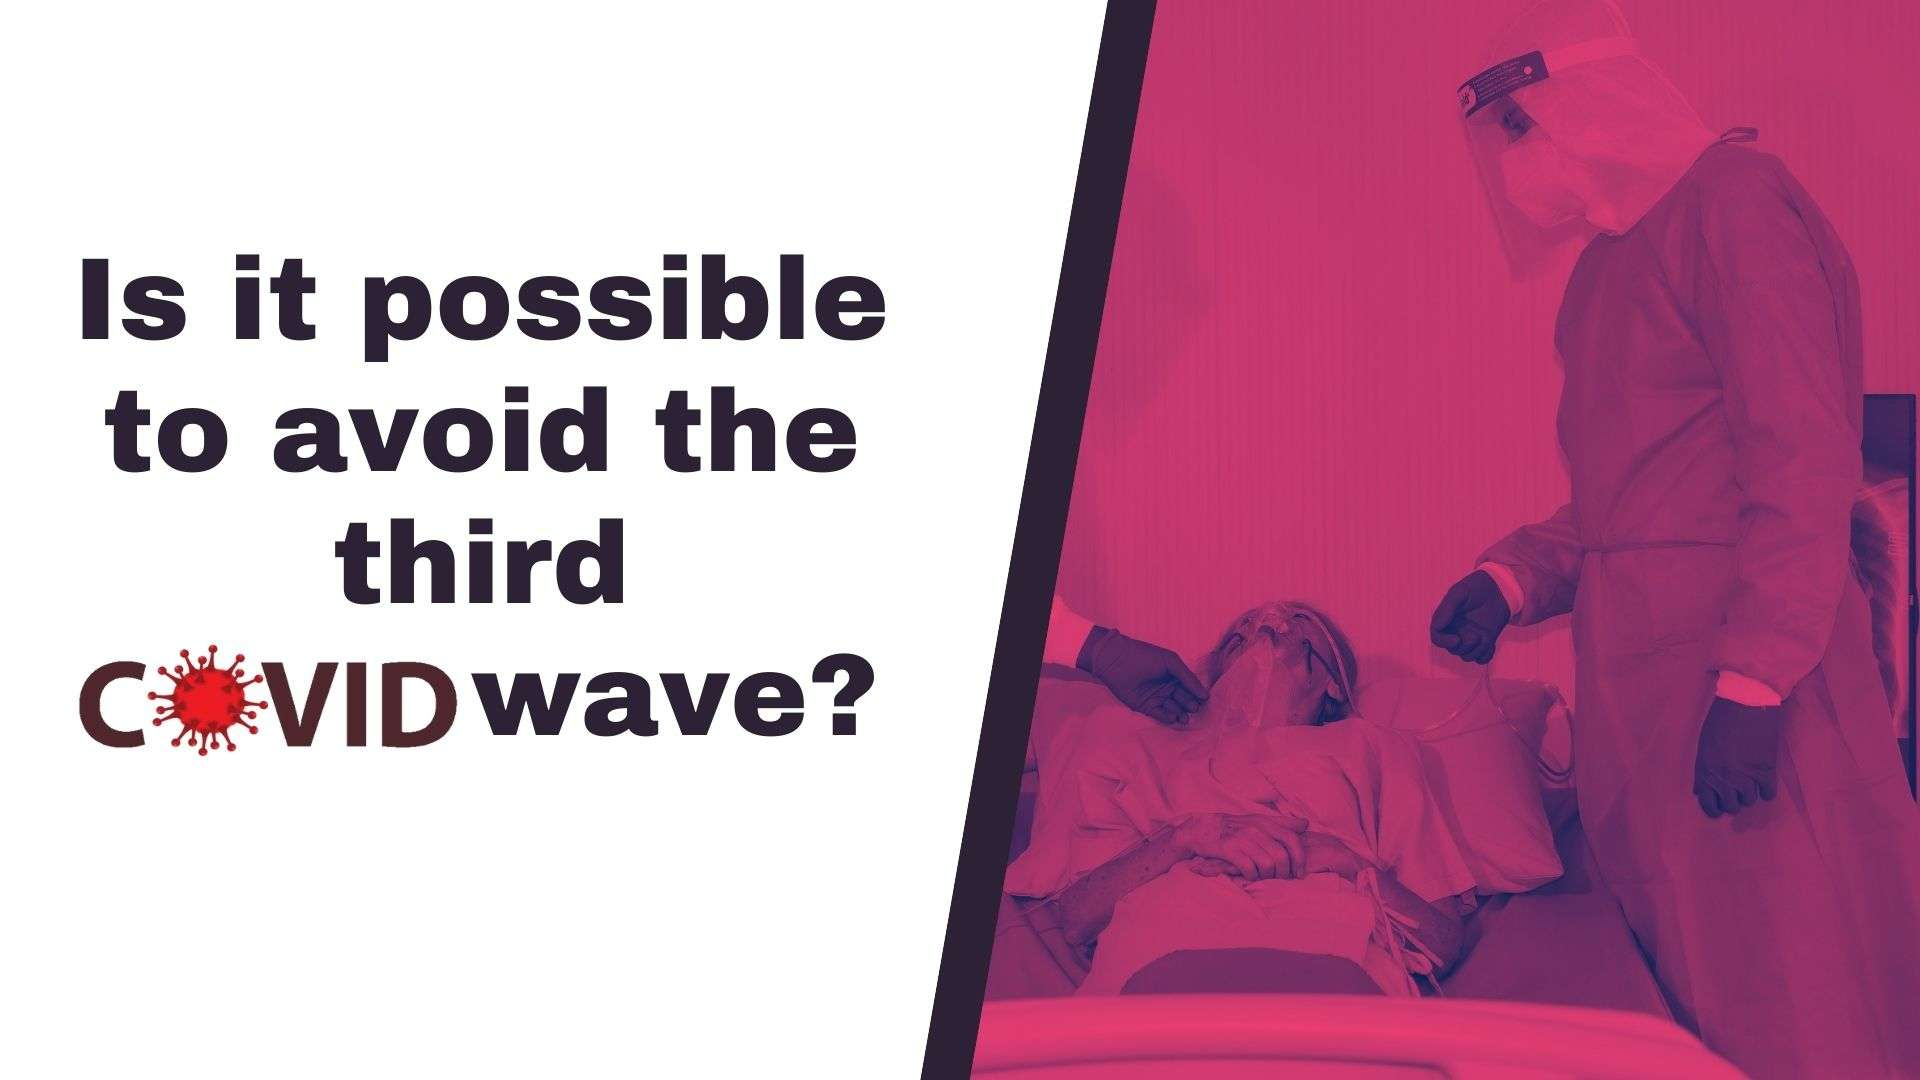 is-it-possible-to-avoid-the-third-covid-wave